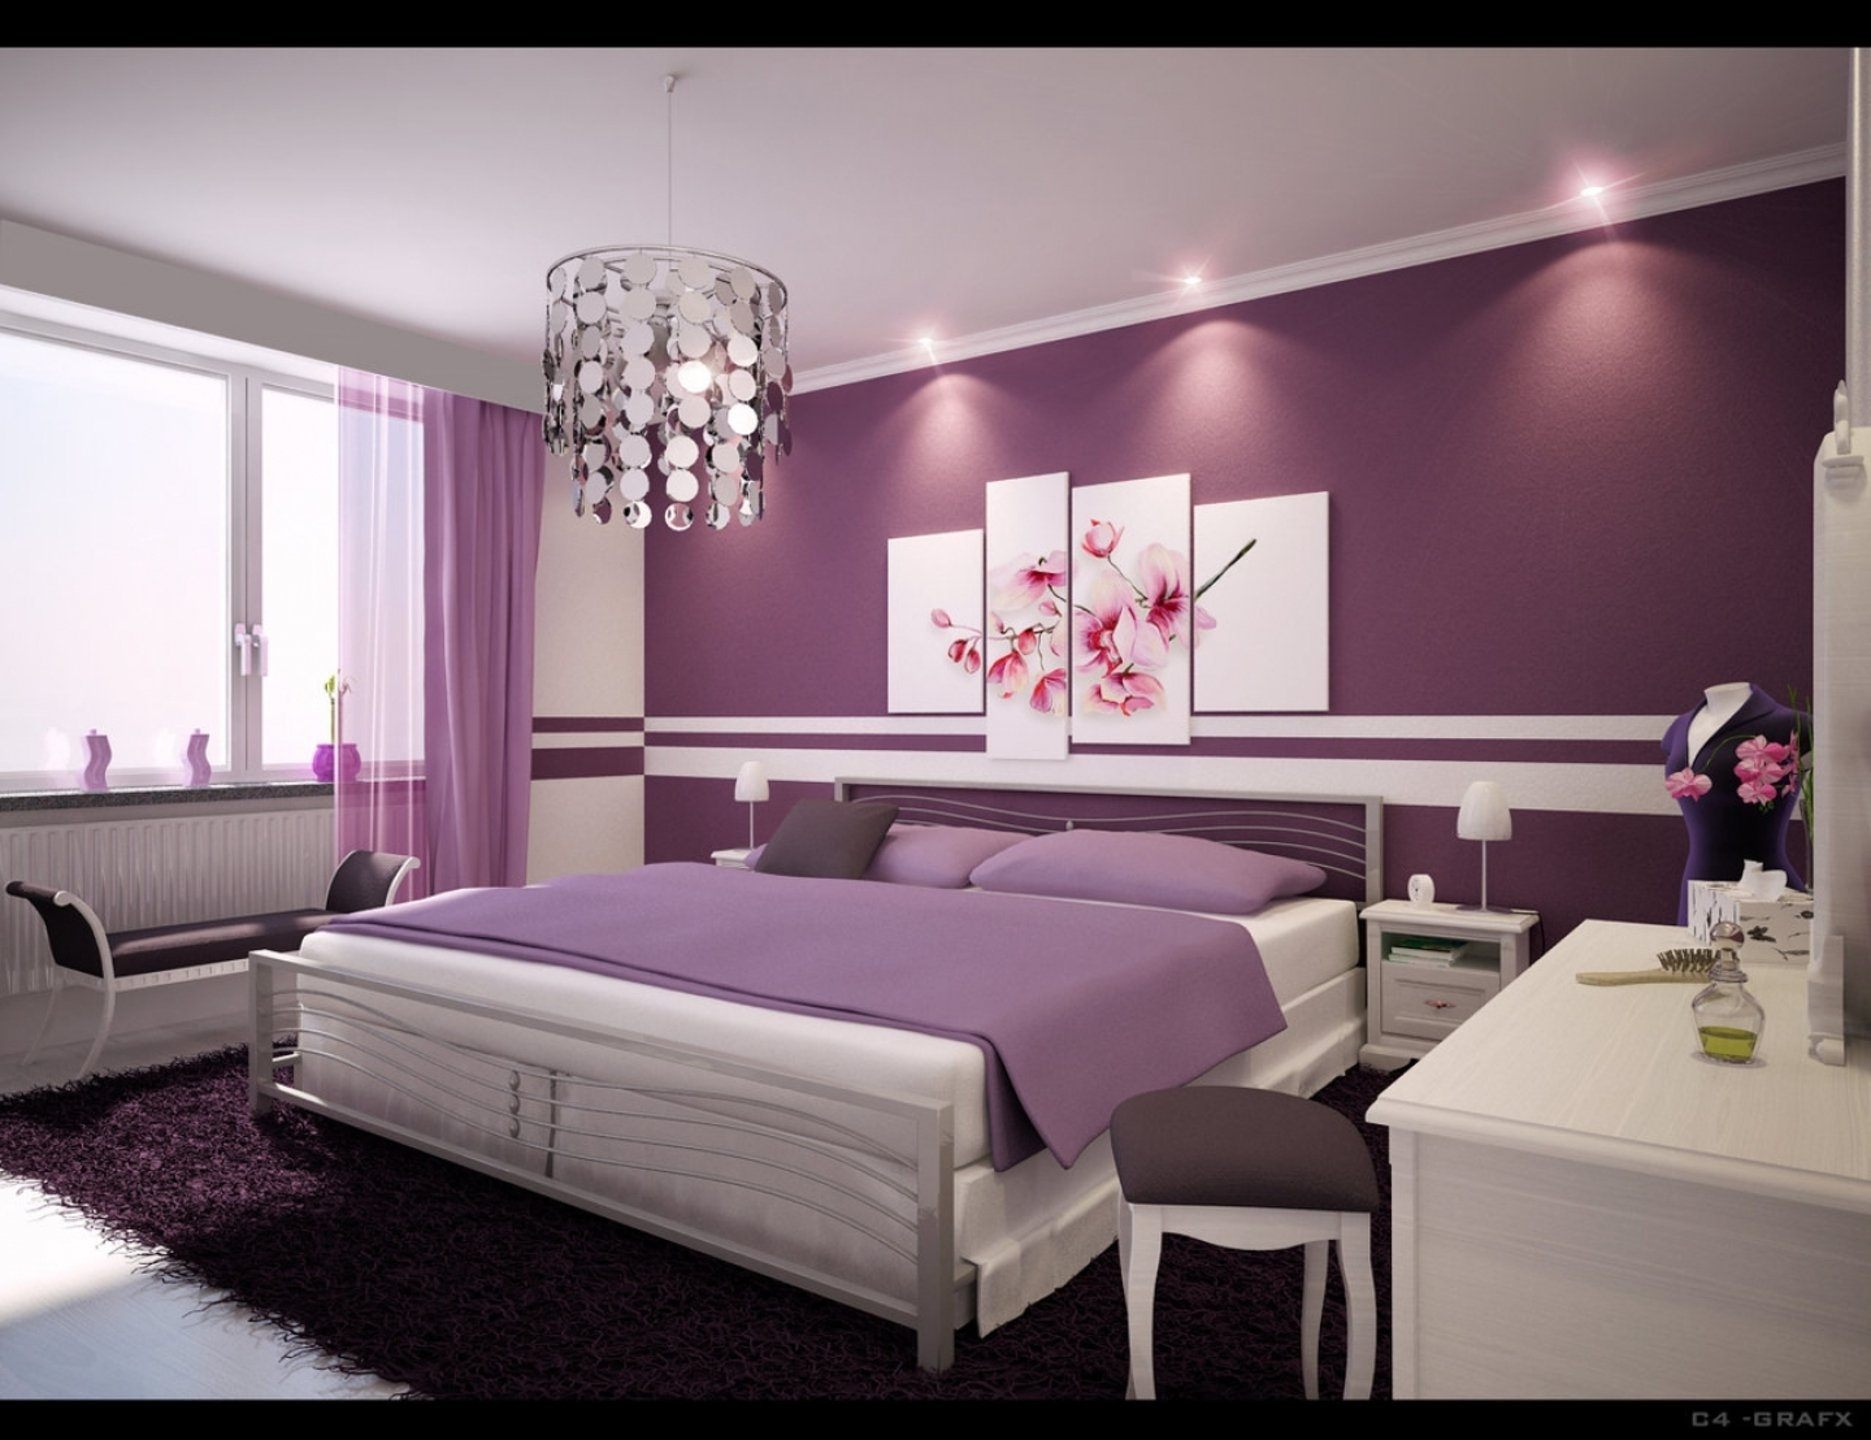 Purple Wall Theme And Purple Blanket On White Wooden Bed Added Pertaining To Purple Curtains For Kids Room (Image 23 of 25)